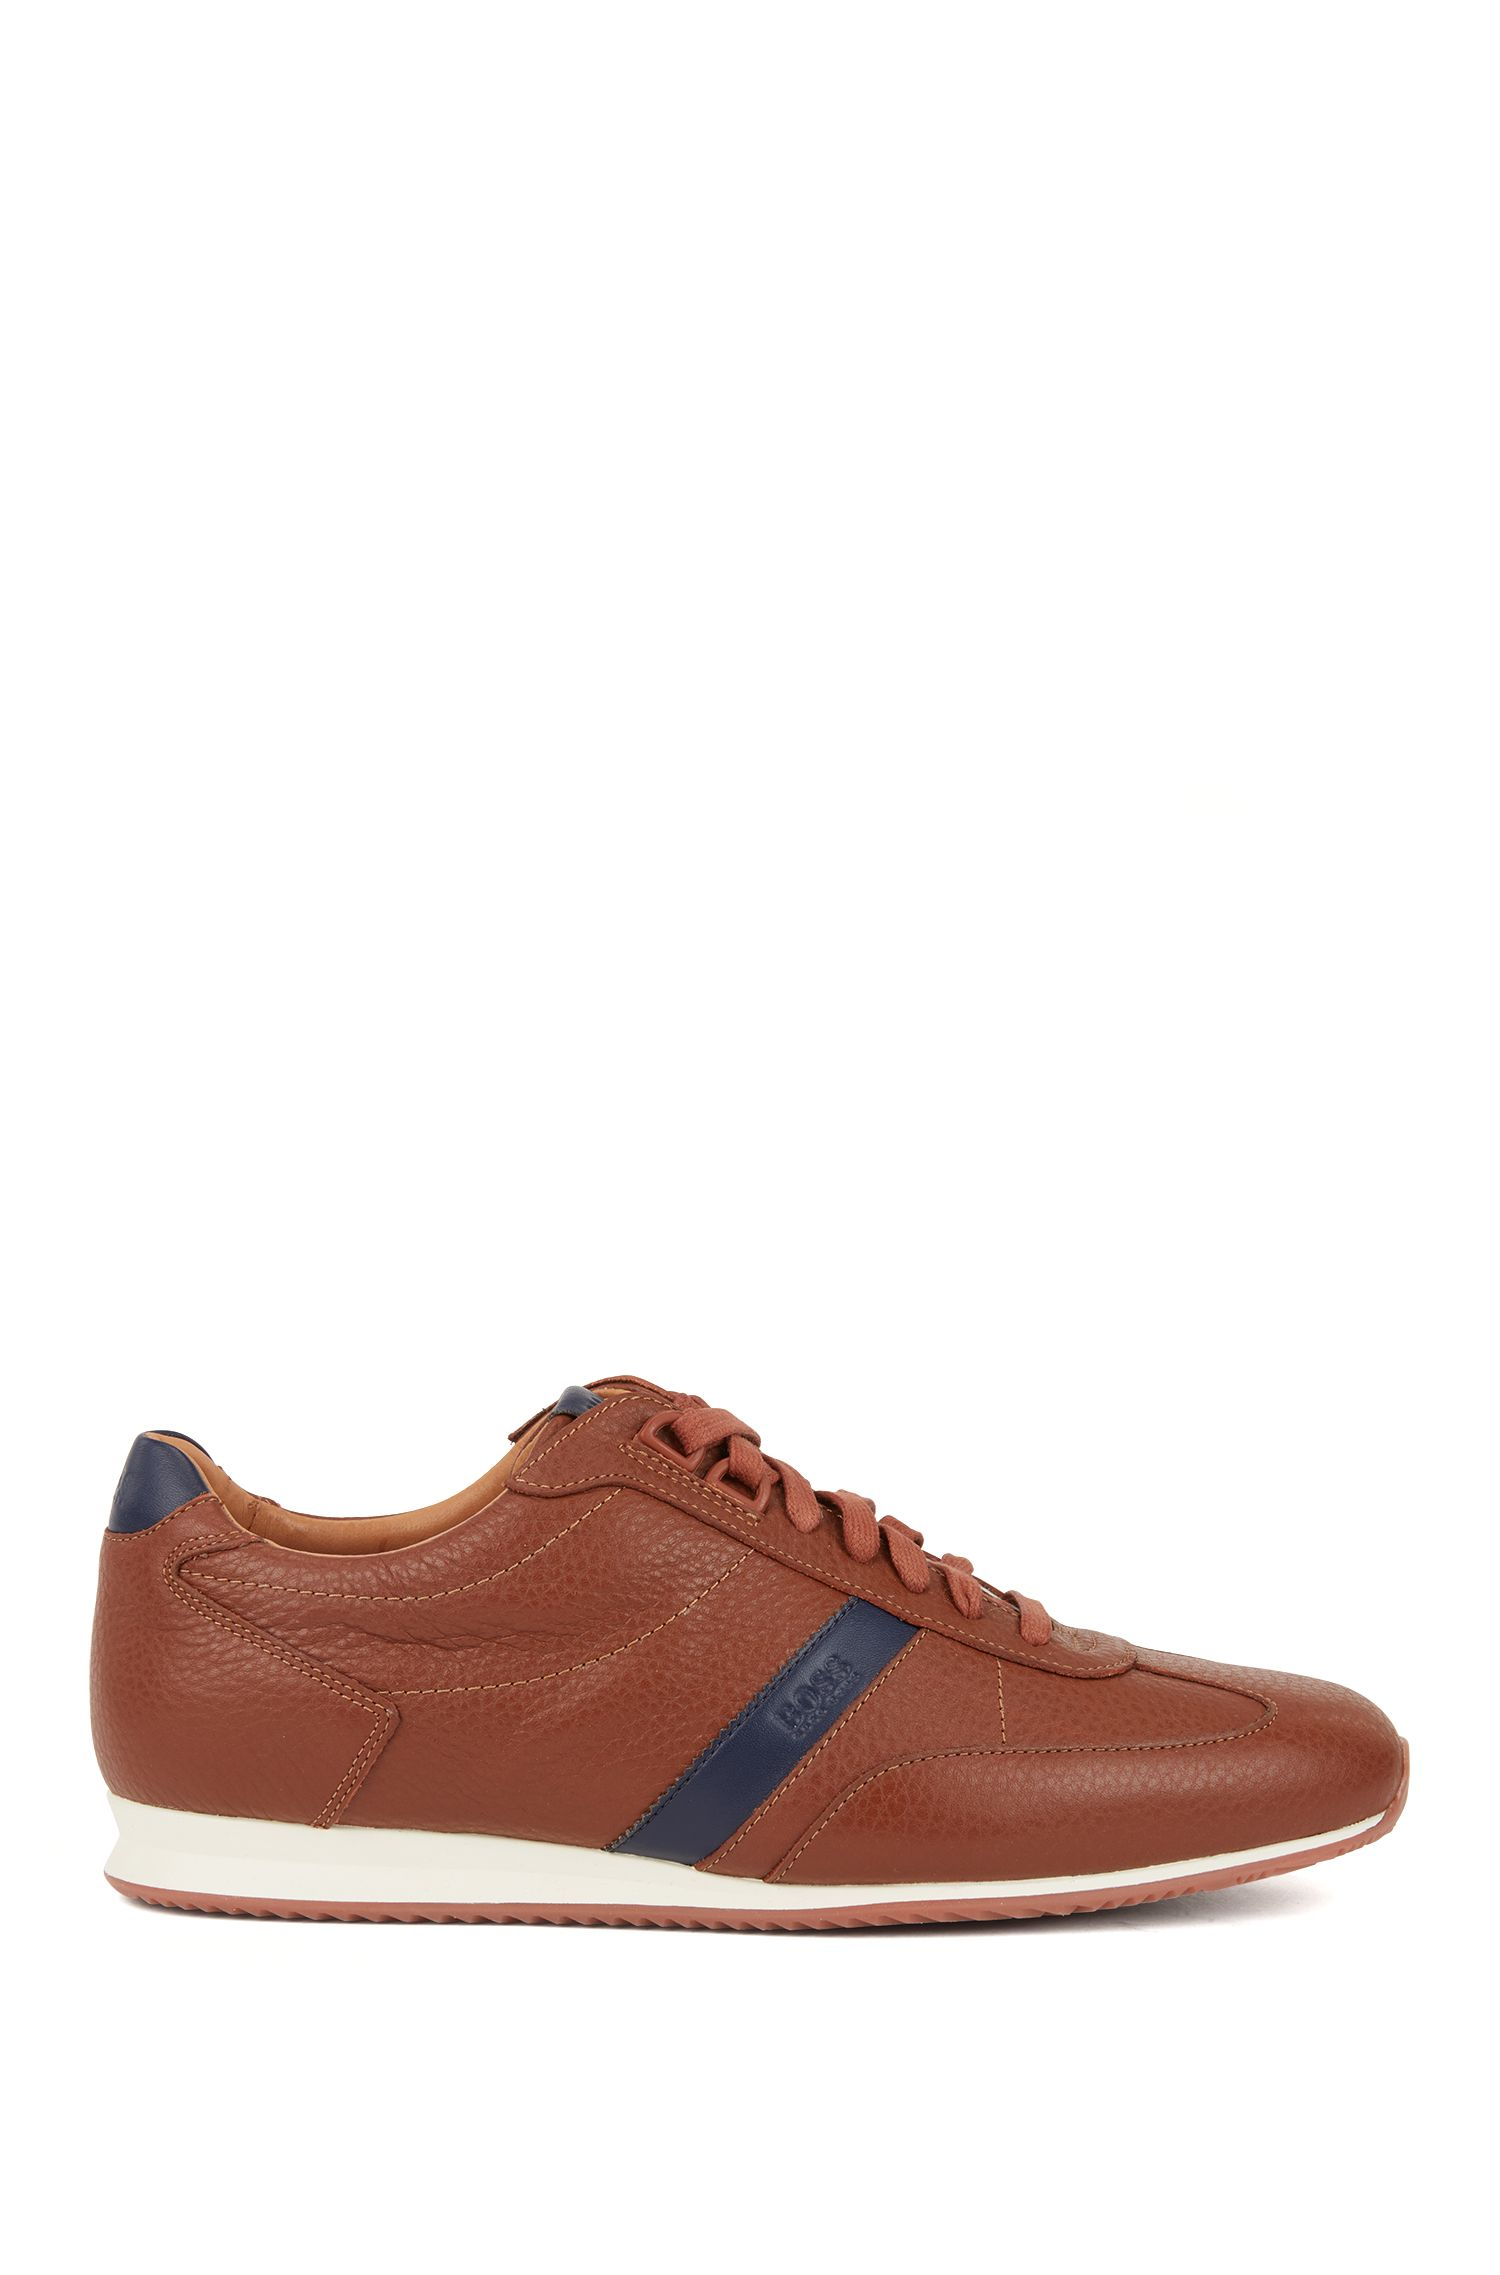 Low-top trainers in tumbled leather with logo detail, Brown